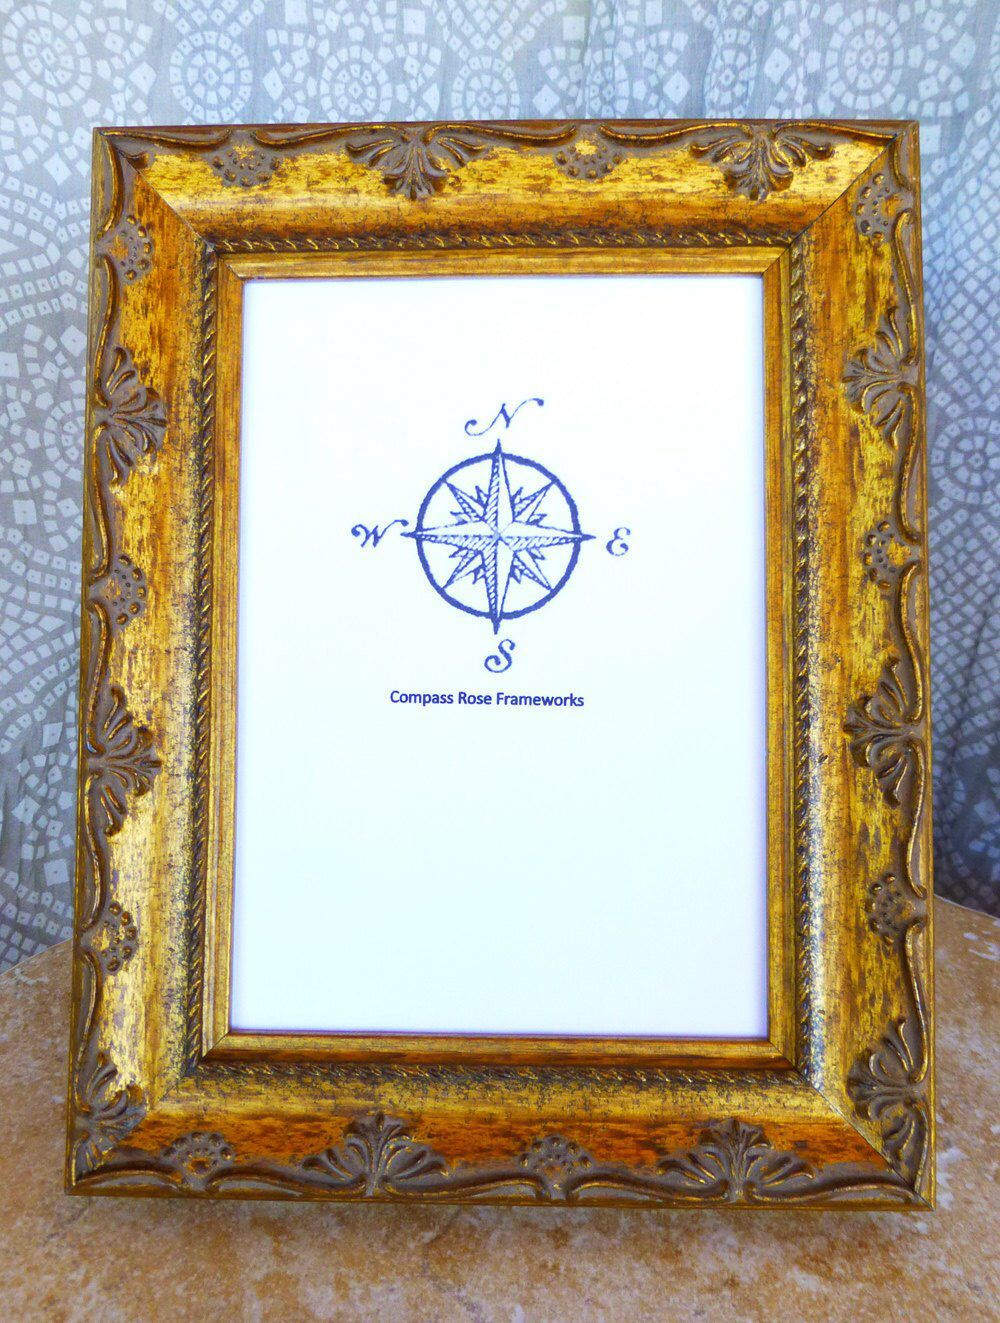 Wood Picture Frame Gold Antique Finish Classic Handmade Tabletop Display Select Size 4 X 6 5 X 7 8 X 10 8 5 X 11 Picture On Wood Wood Picture Frames Frame